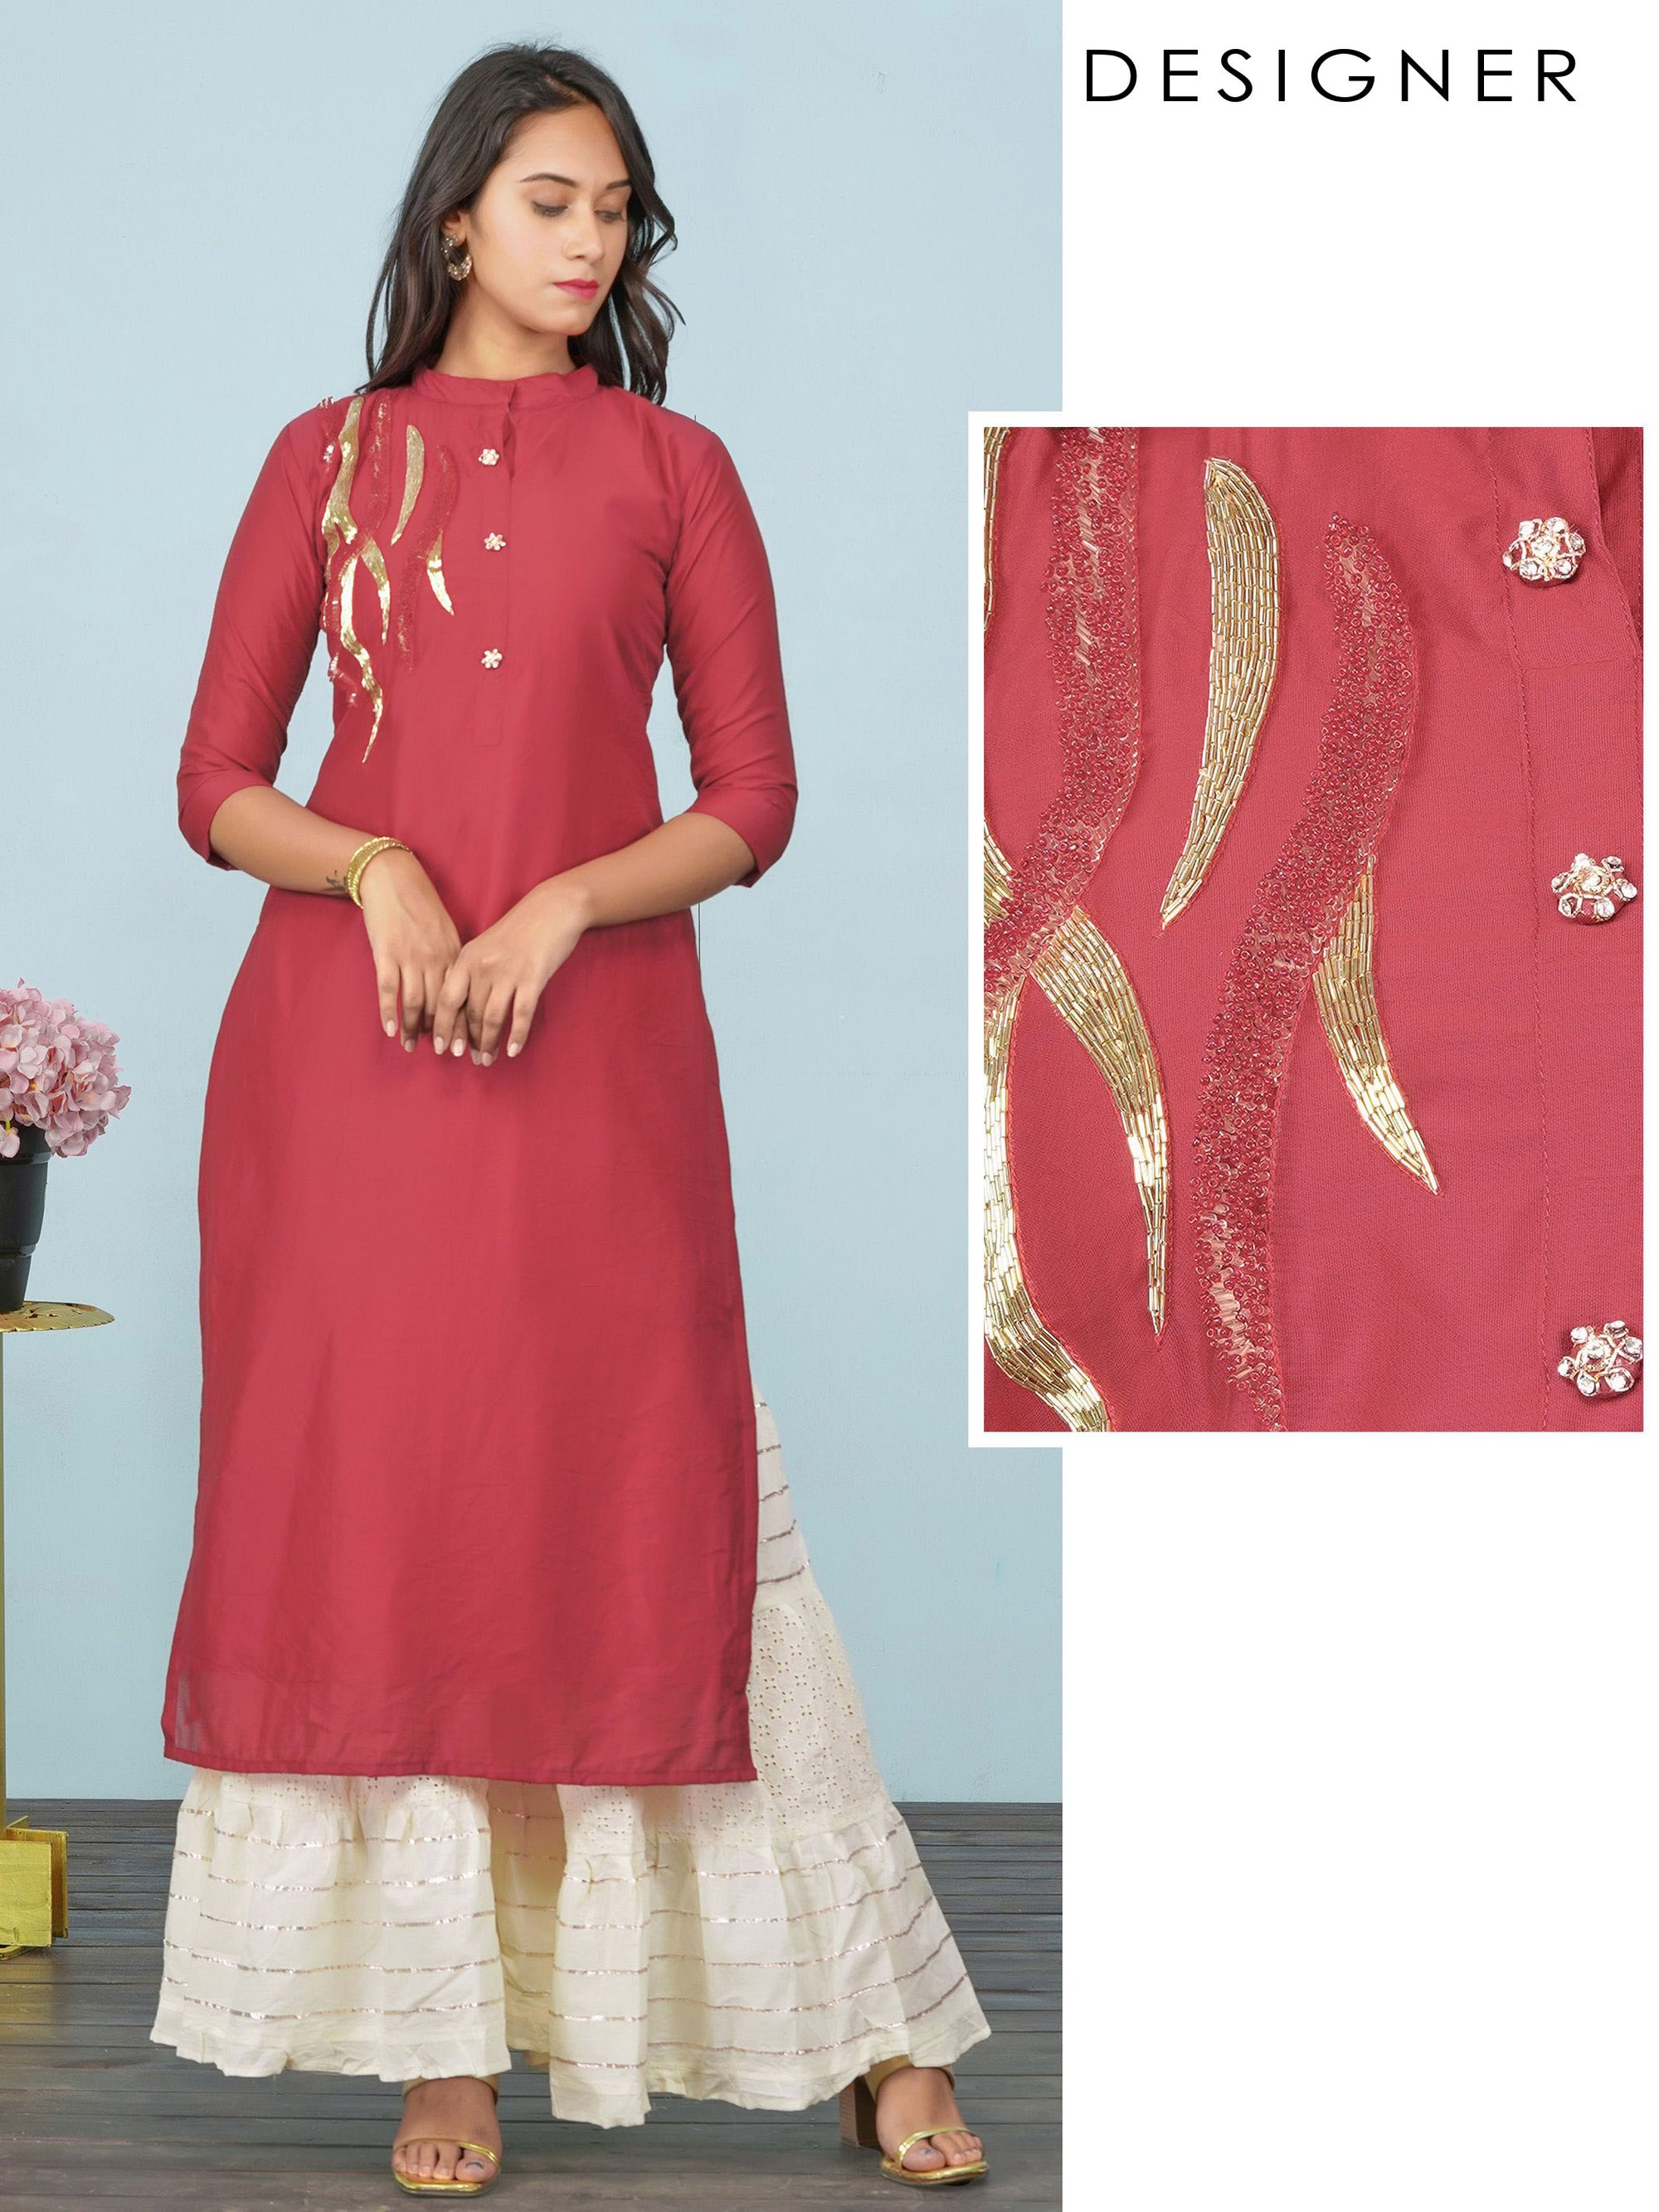 Intense Cutdana & Bead work Detailed Kurti – Ruby Red